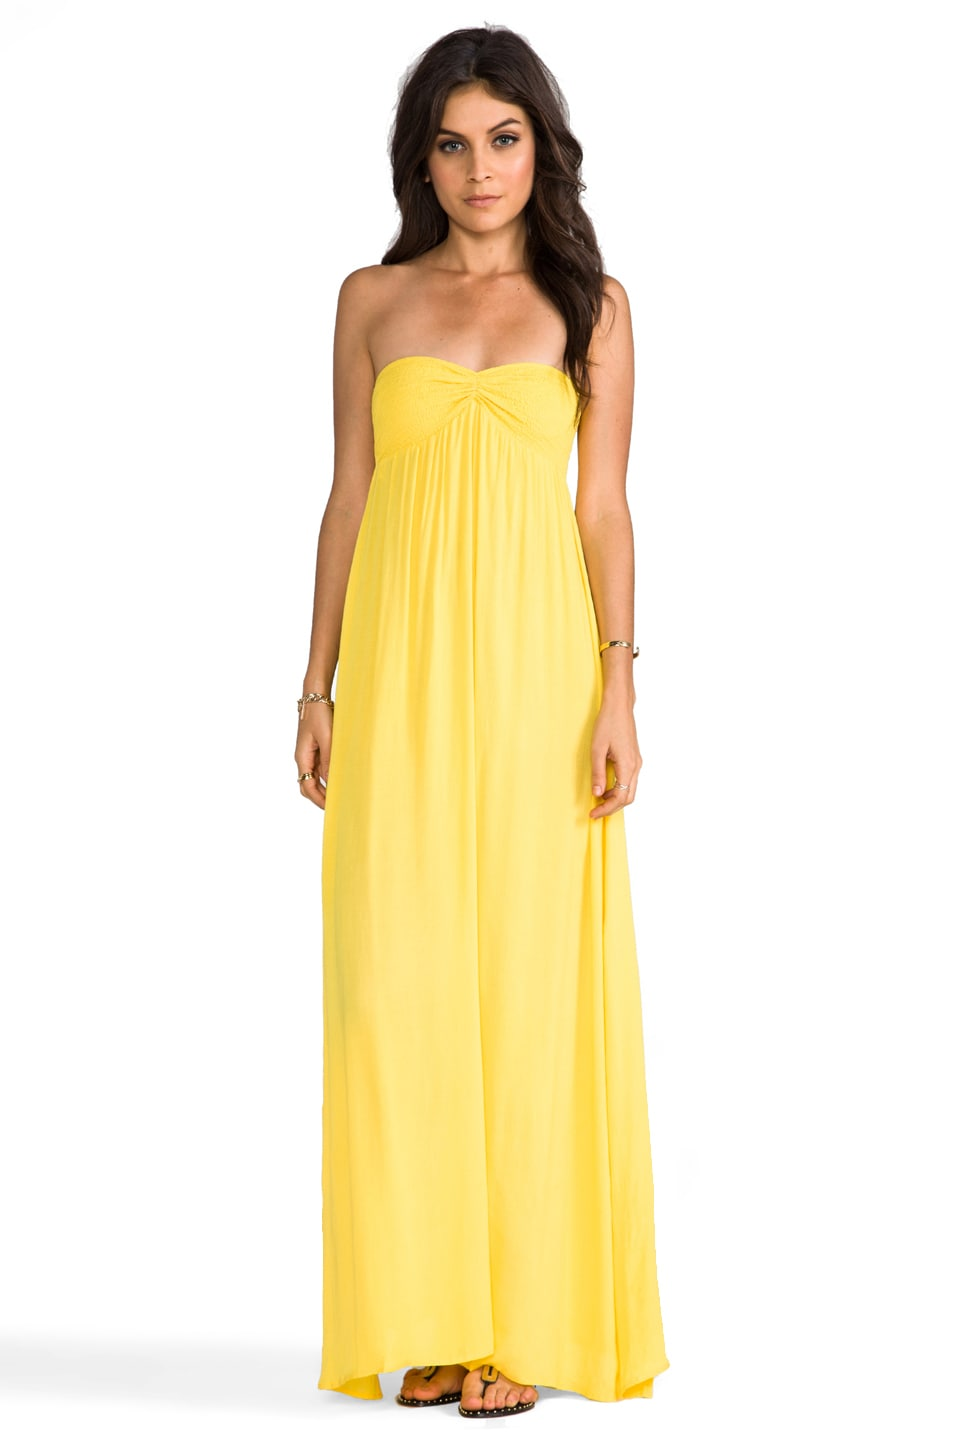 Indah Zanzi Rayon Crepe Pinch Front Smocked Bust Strapless Maxi Dress in Sunshine